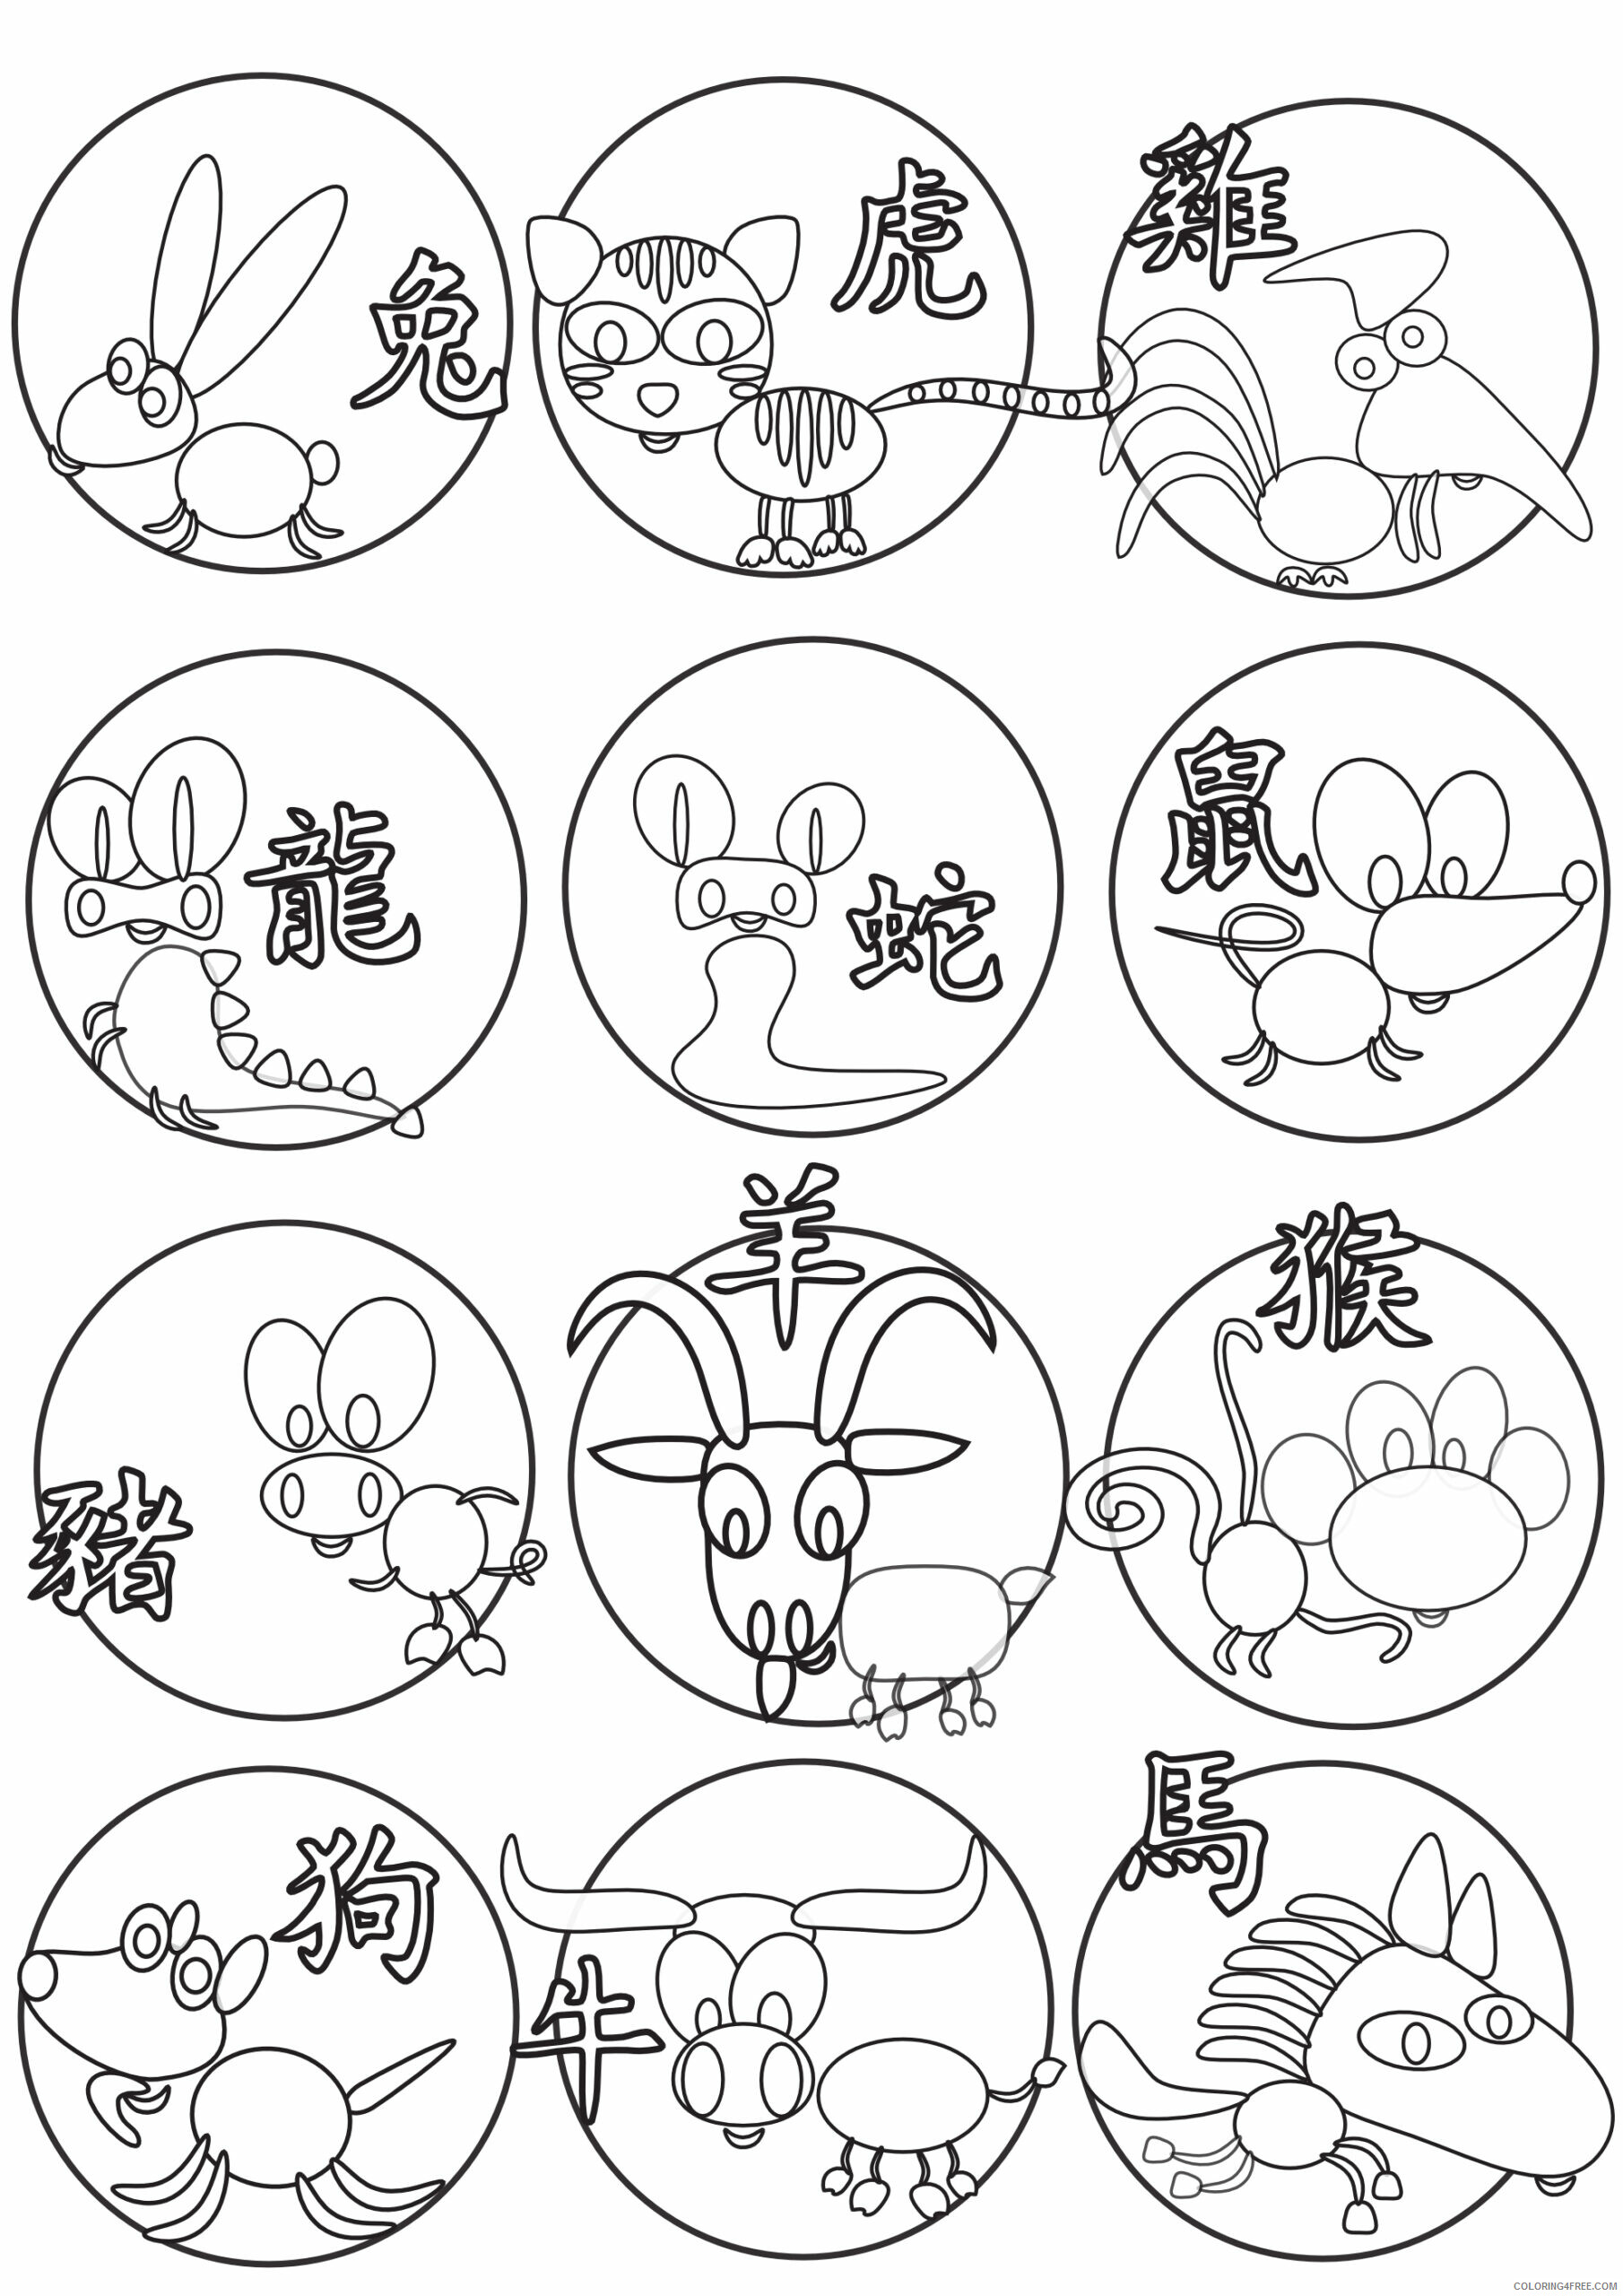 Chinese New Year Coloring Pages Holiday Print Chinese New Year Printable 2021 0089 Coloring4free